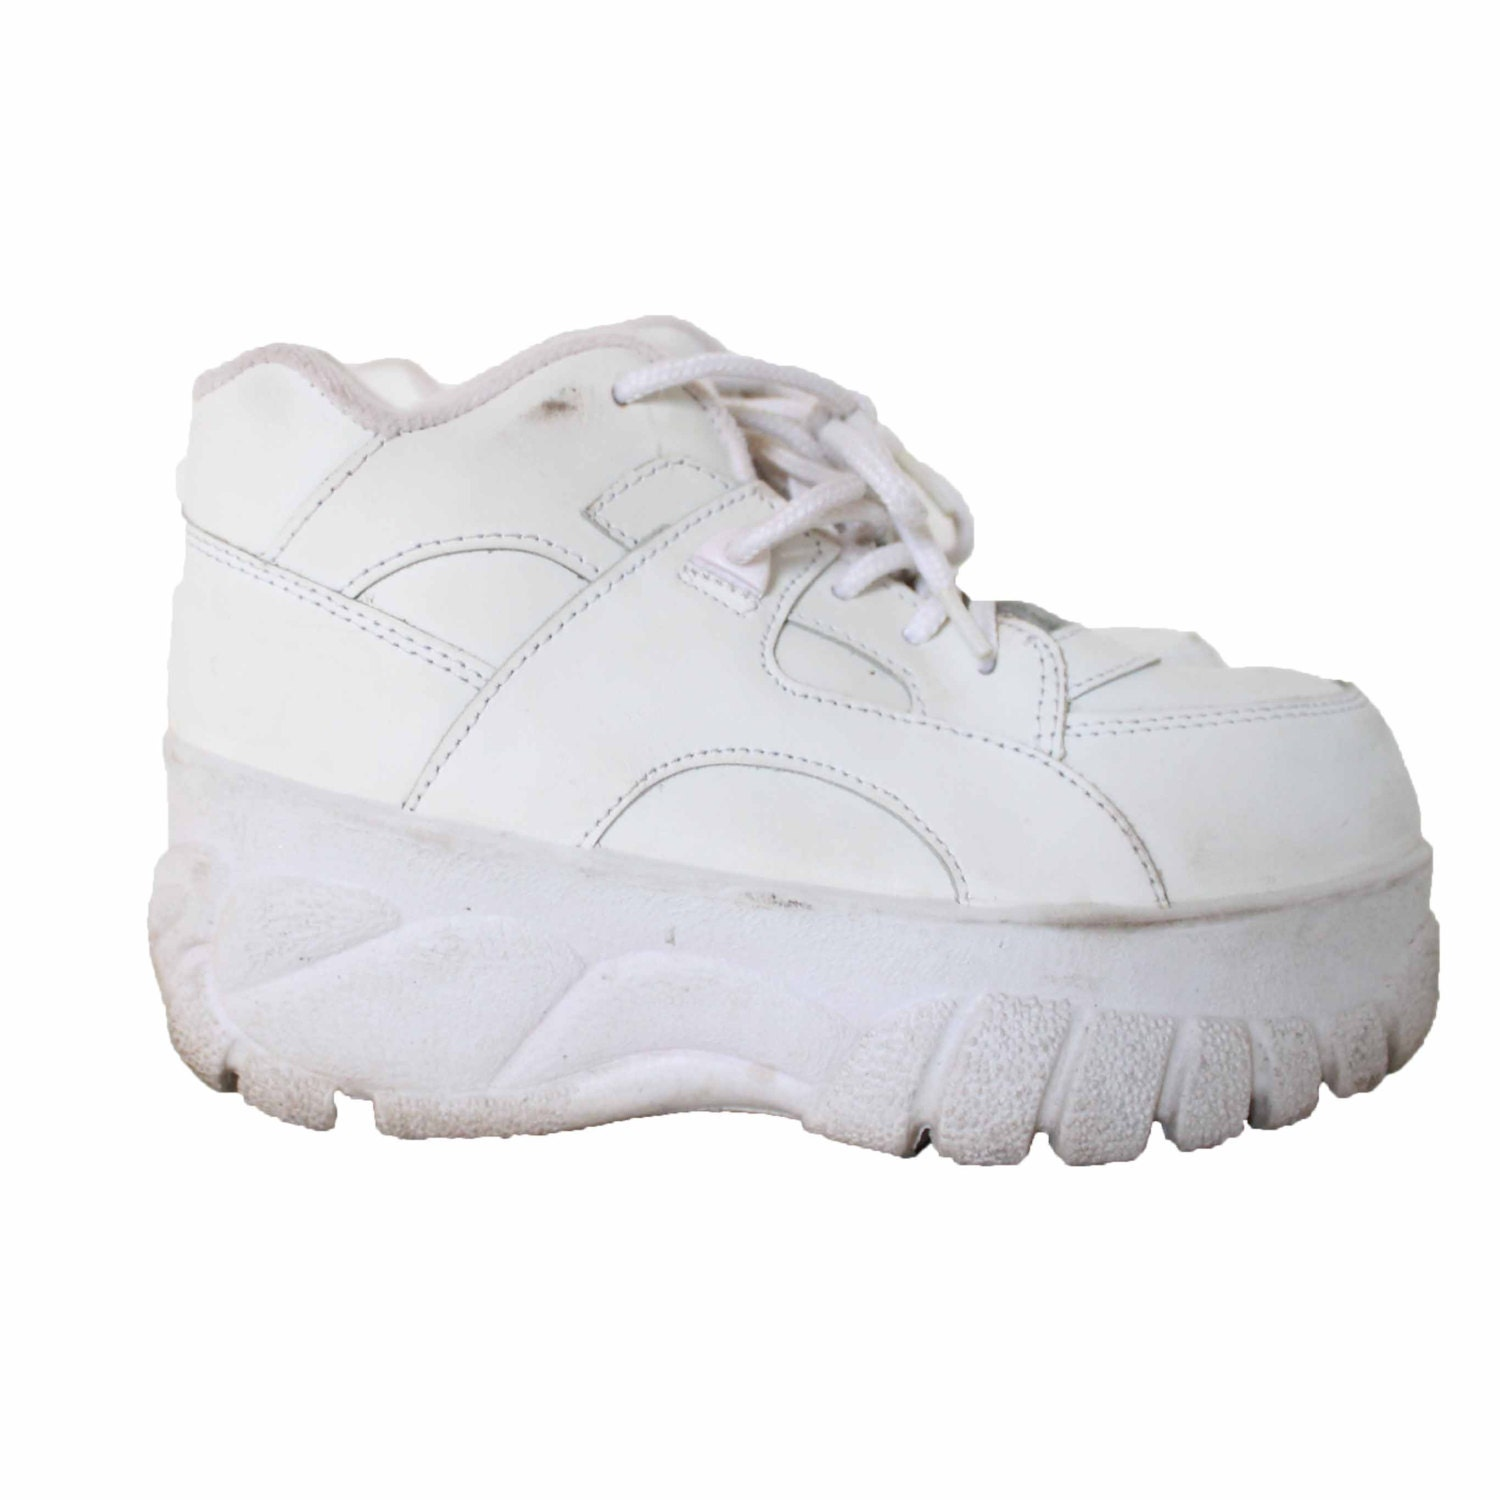 90s White Platform Sneakers Tennis Shoes // Lace Up // Spice